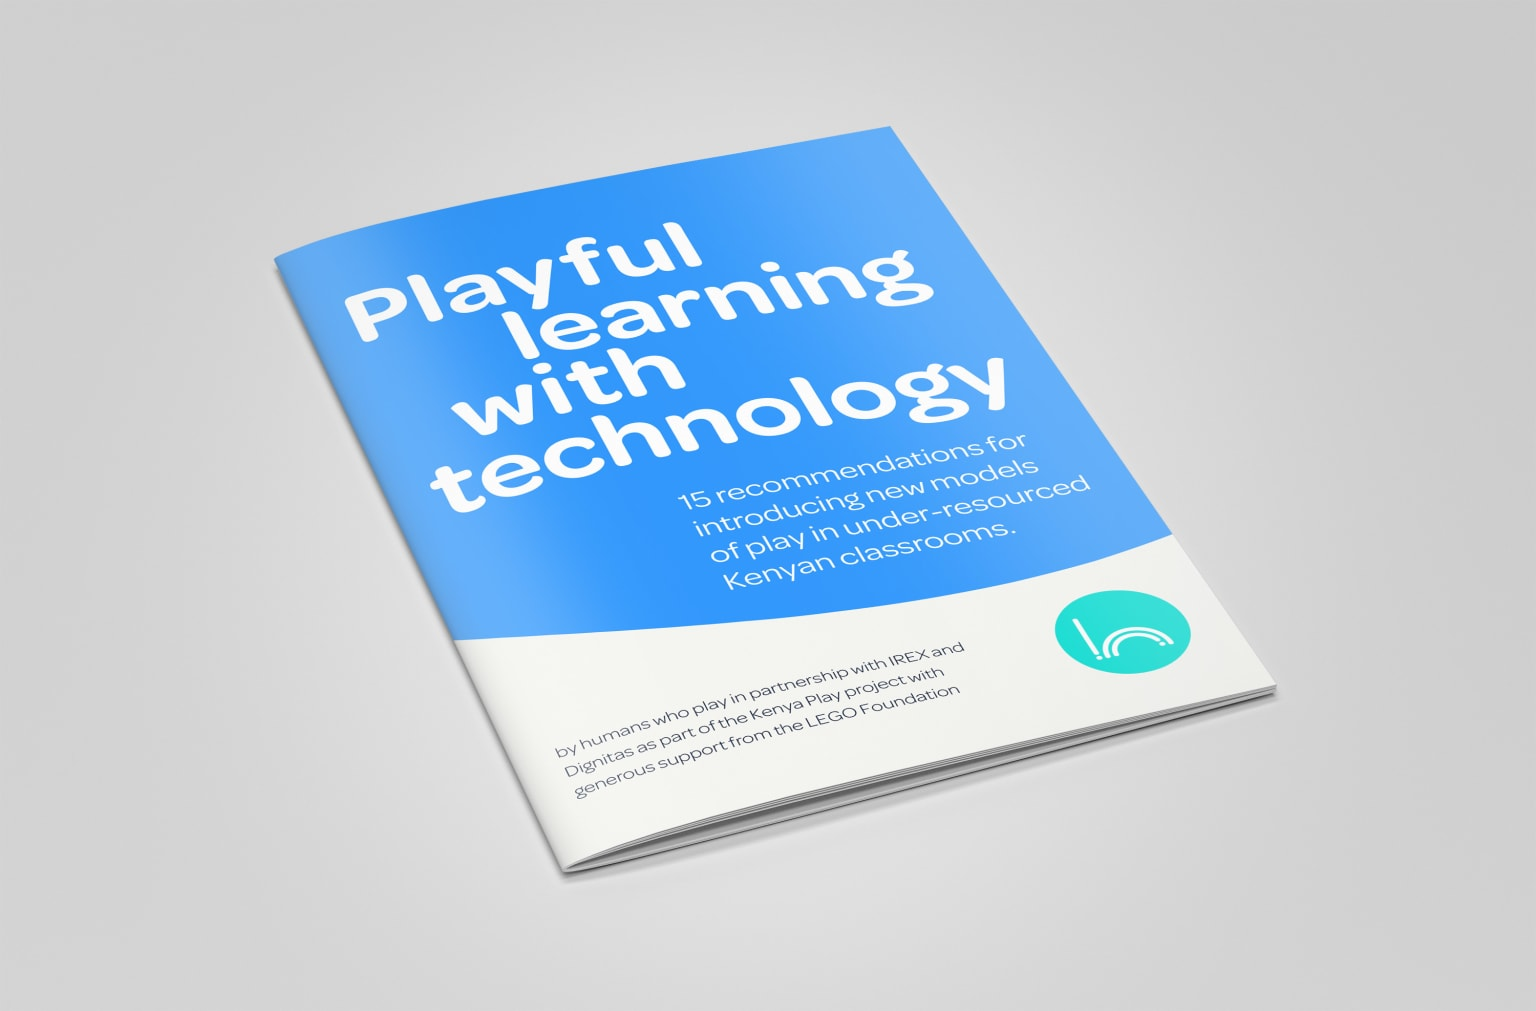 Playful Learning with Technology